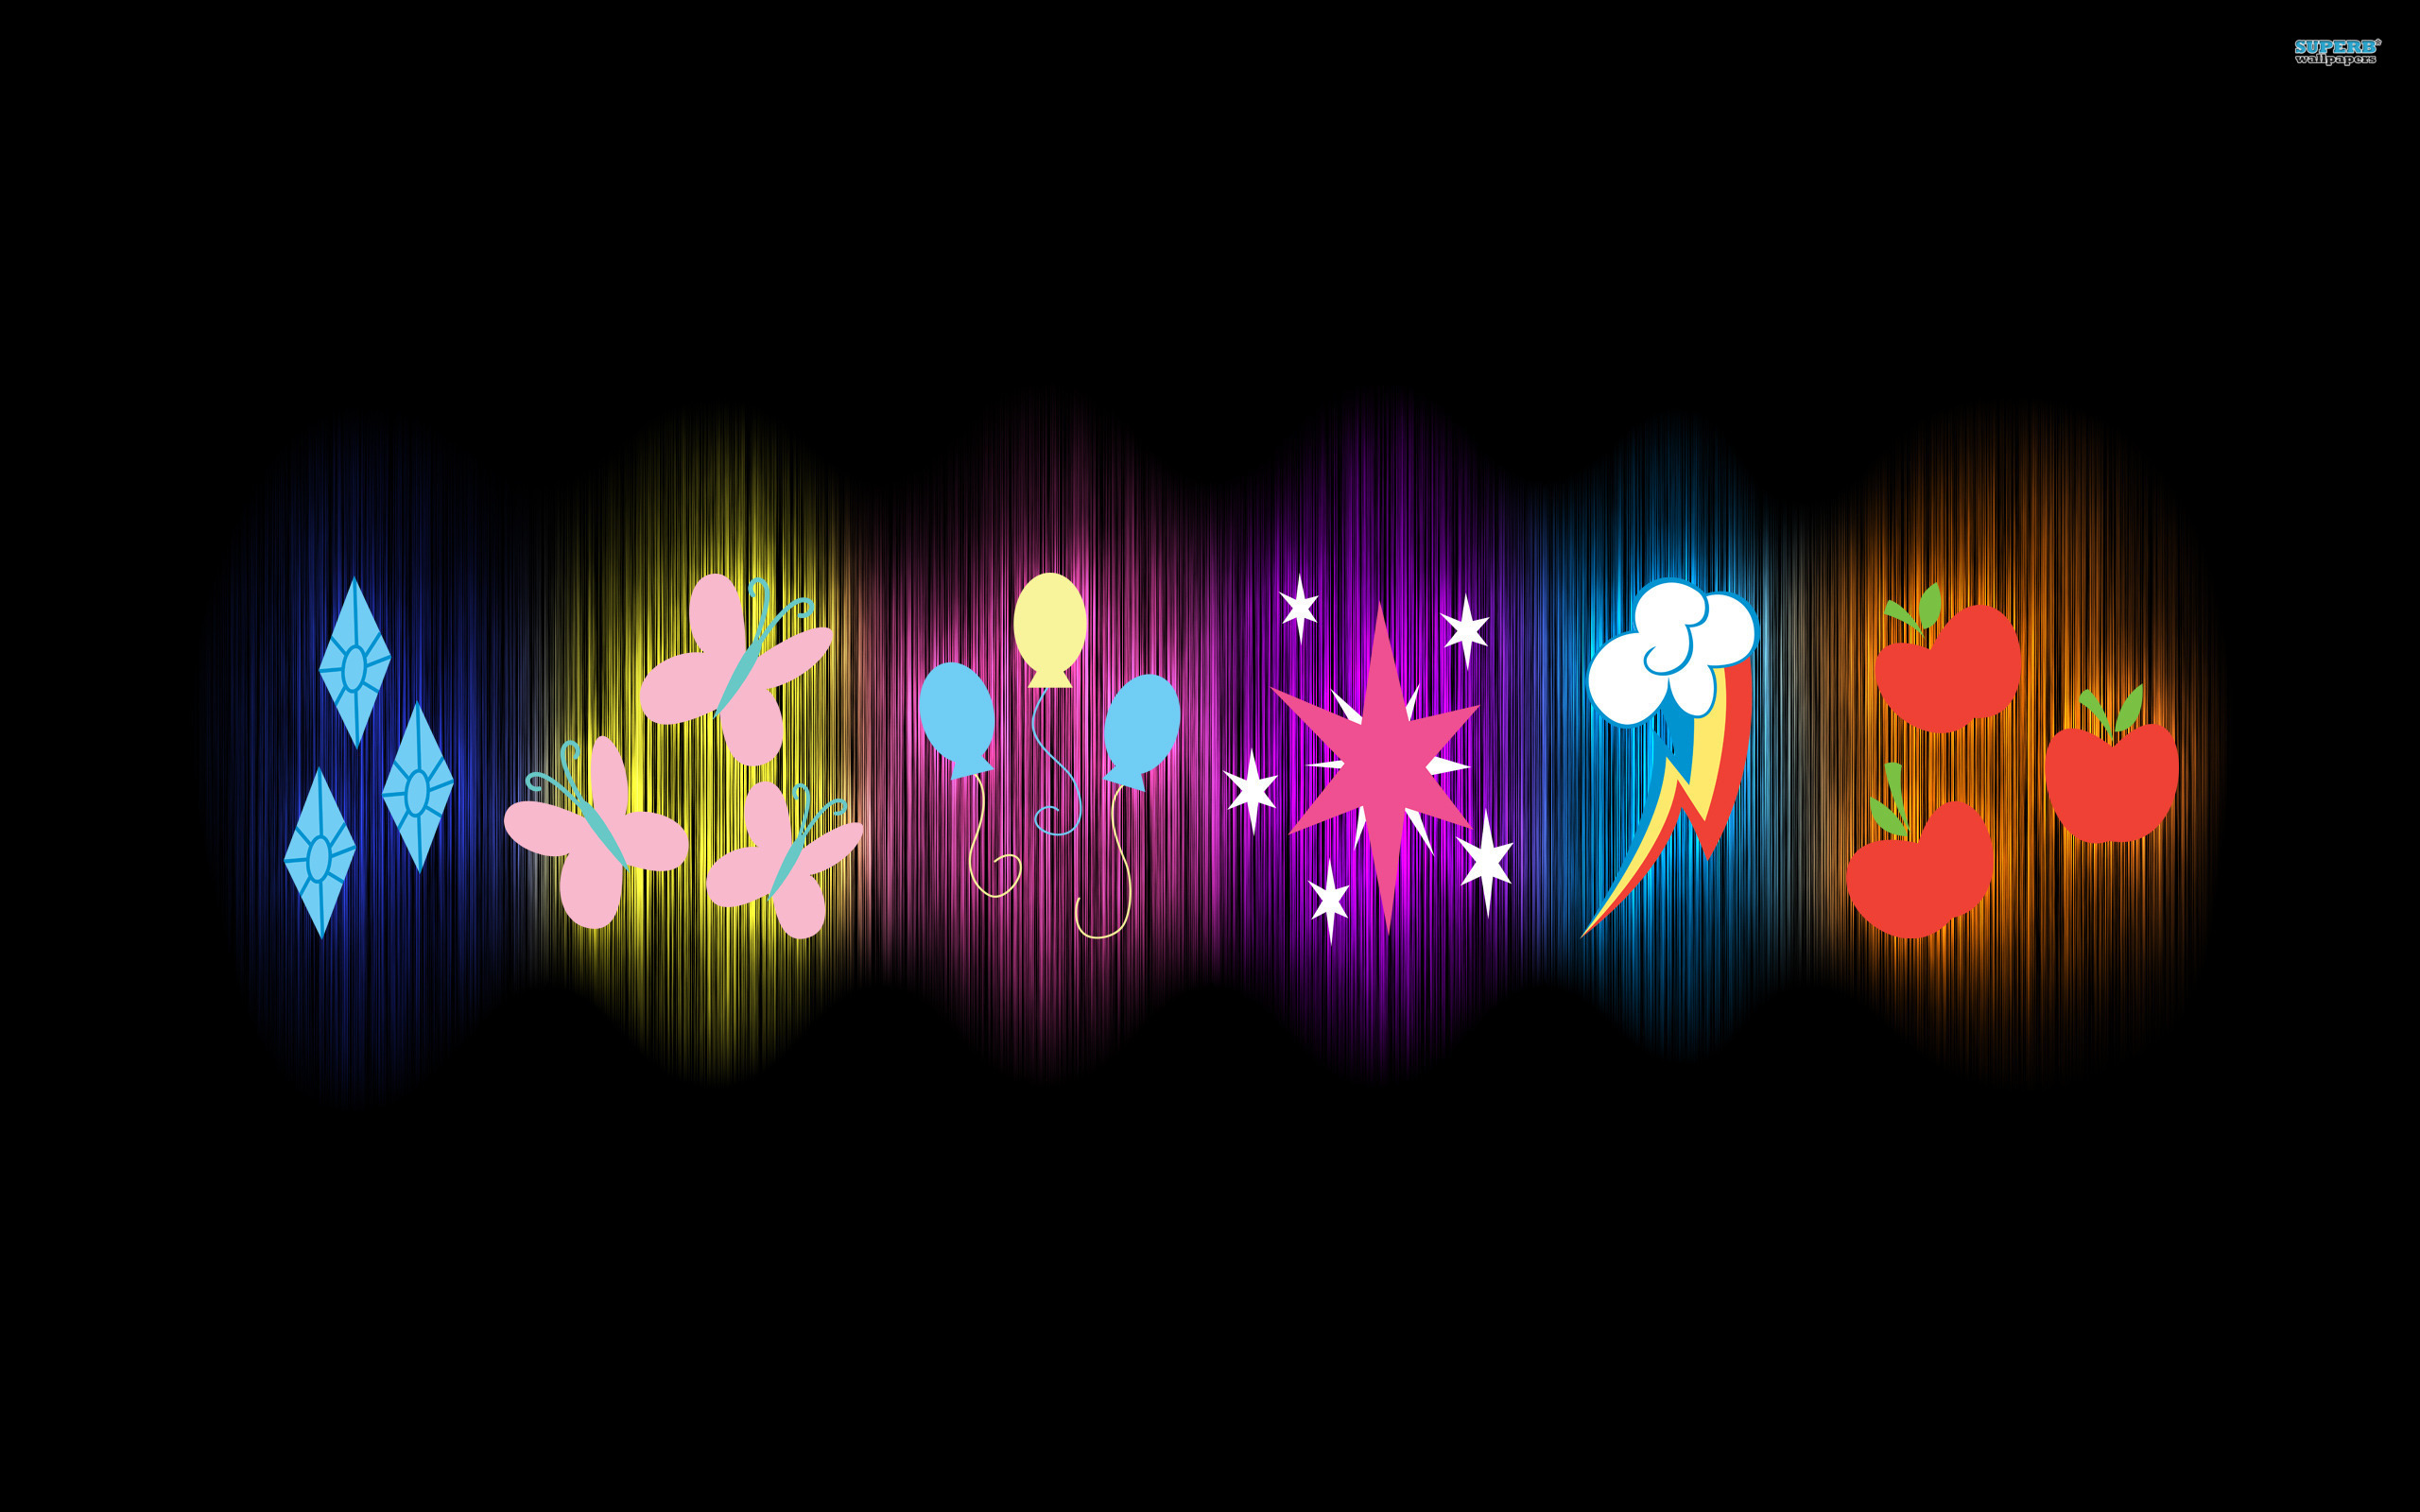 Free Download 2560x1600px Awesome My Little Pony Wallpaper Images